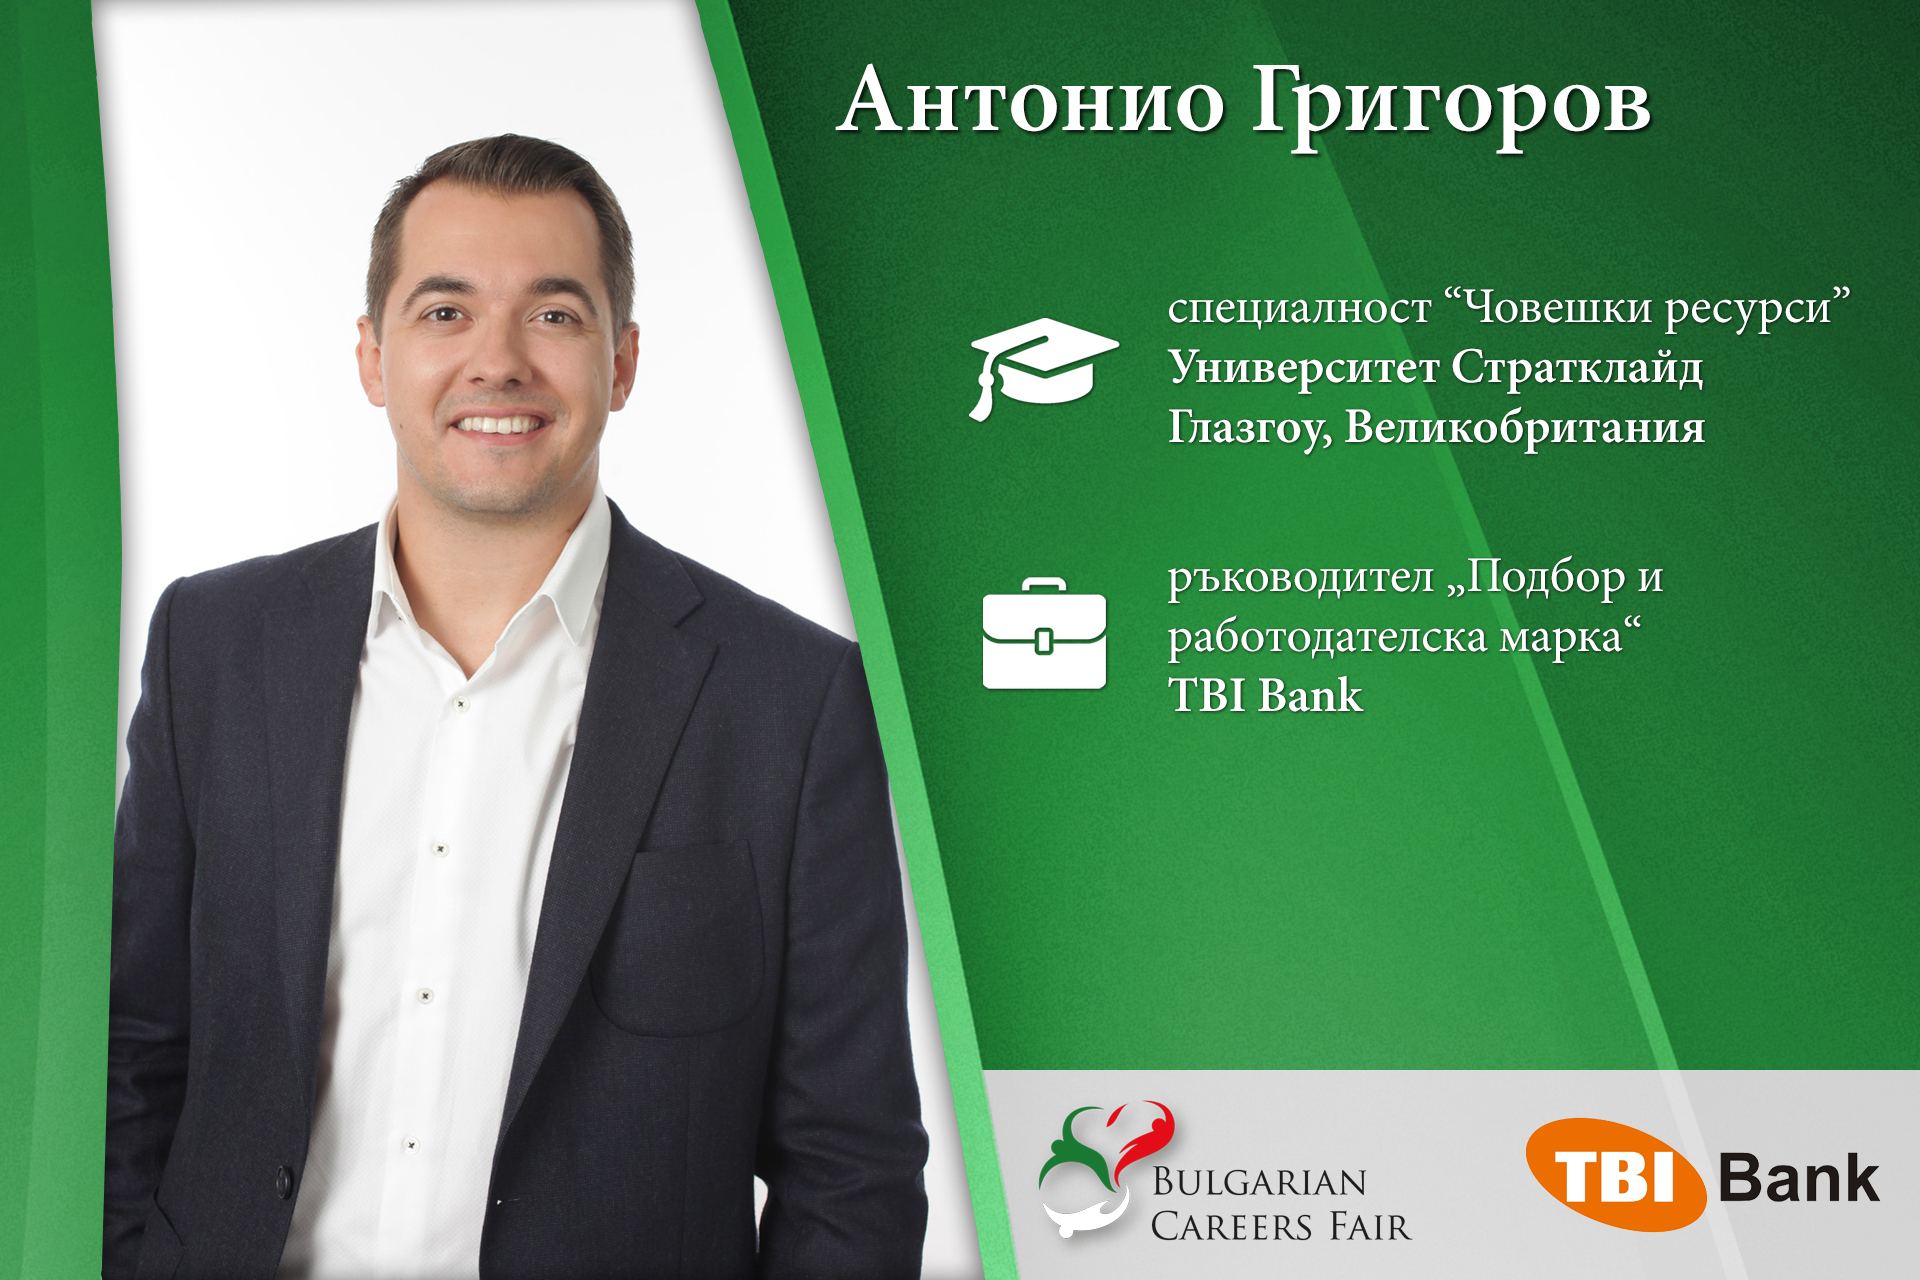 Antonio-Grigorov_profile